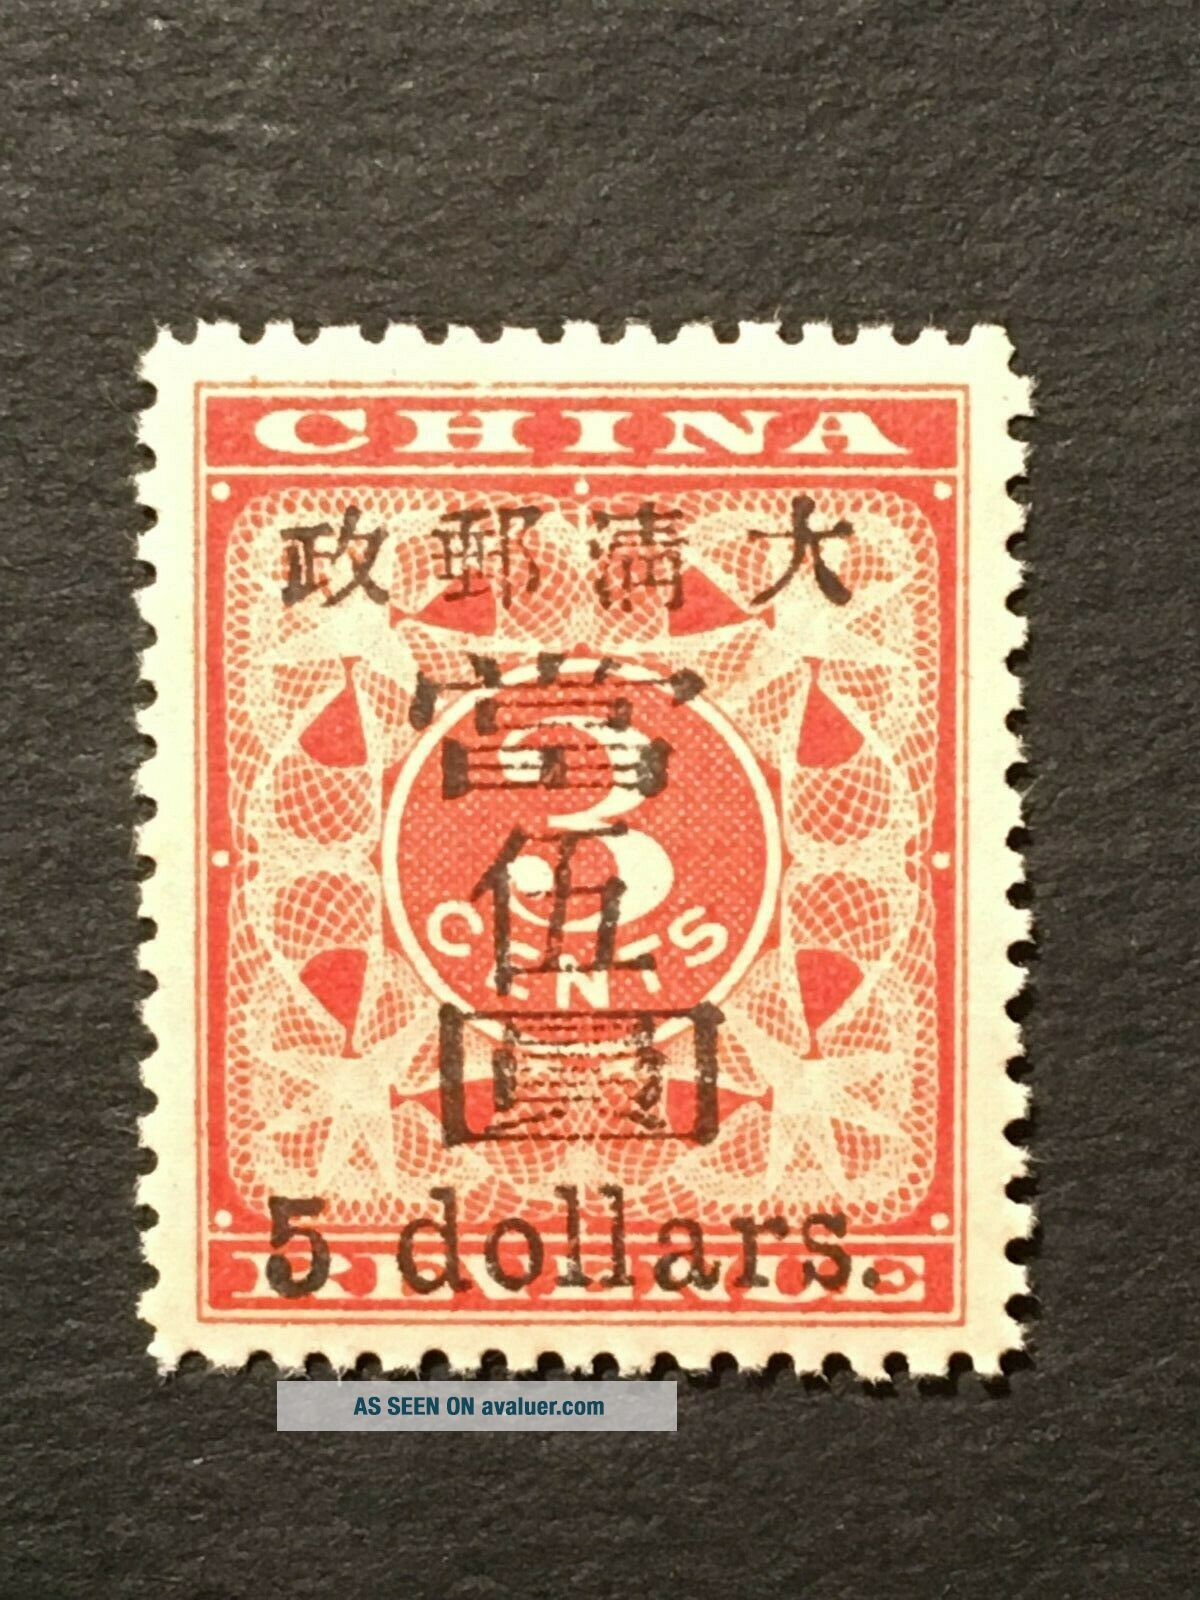 cgi - EMPIRE - 5 DOLLARS ON 3 CENTS RED REVENUE STAMP